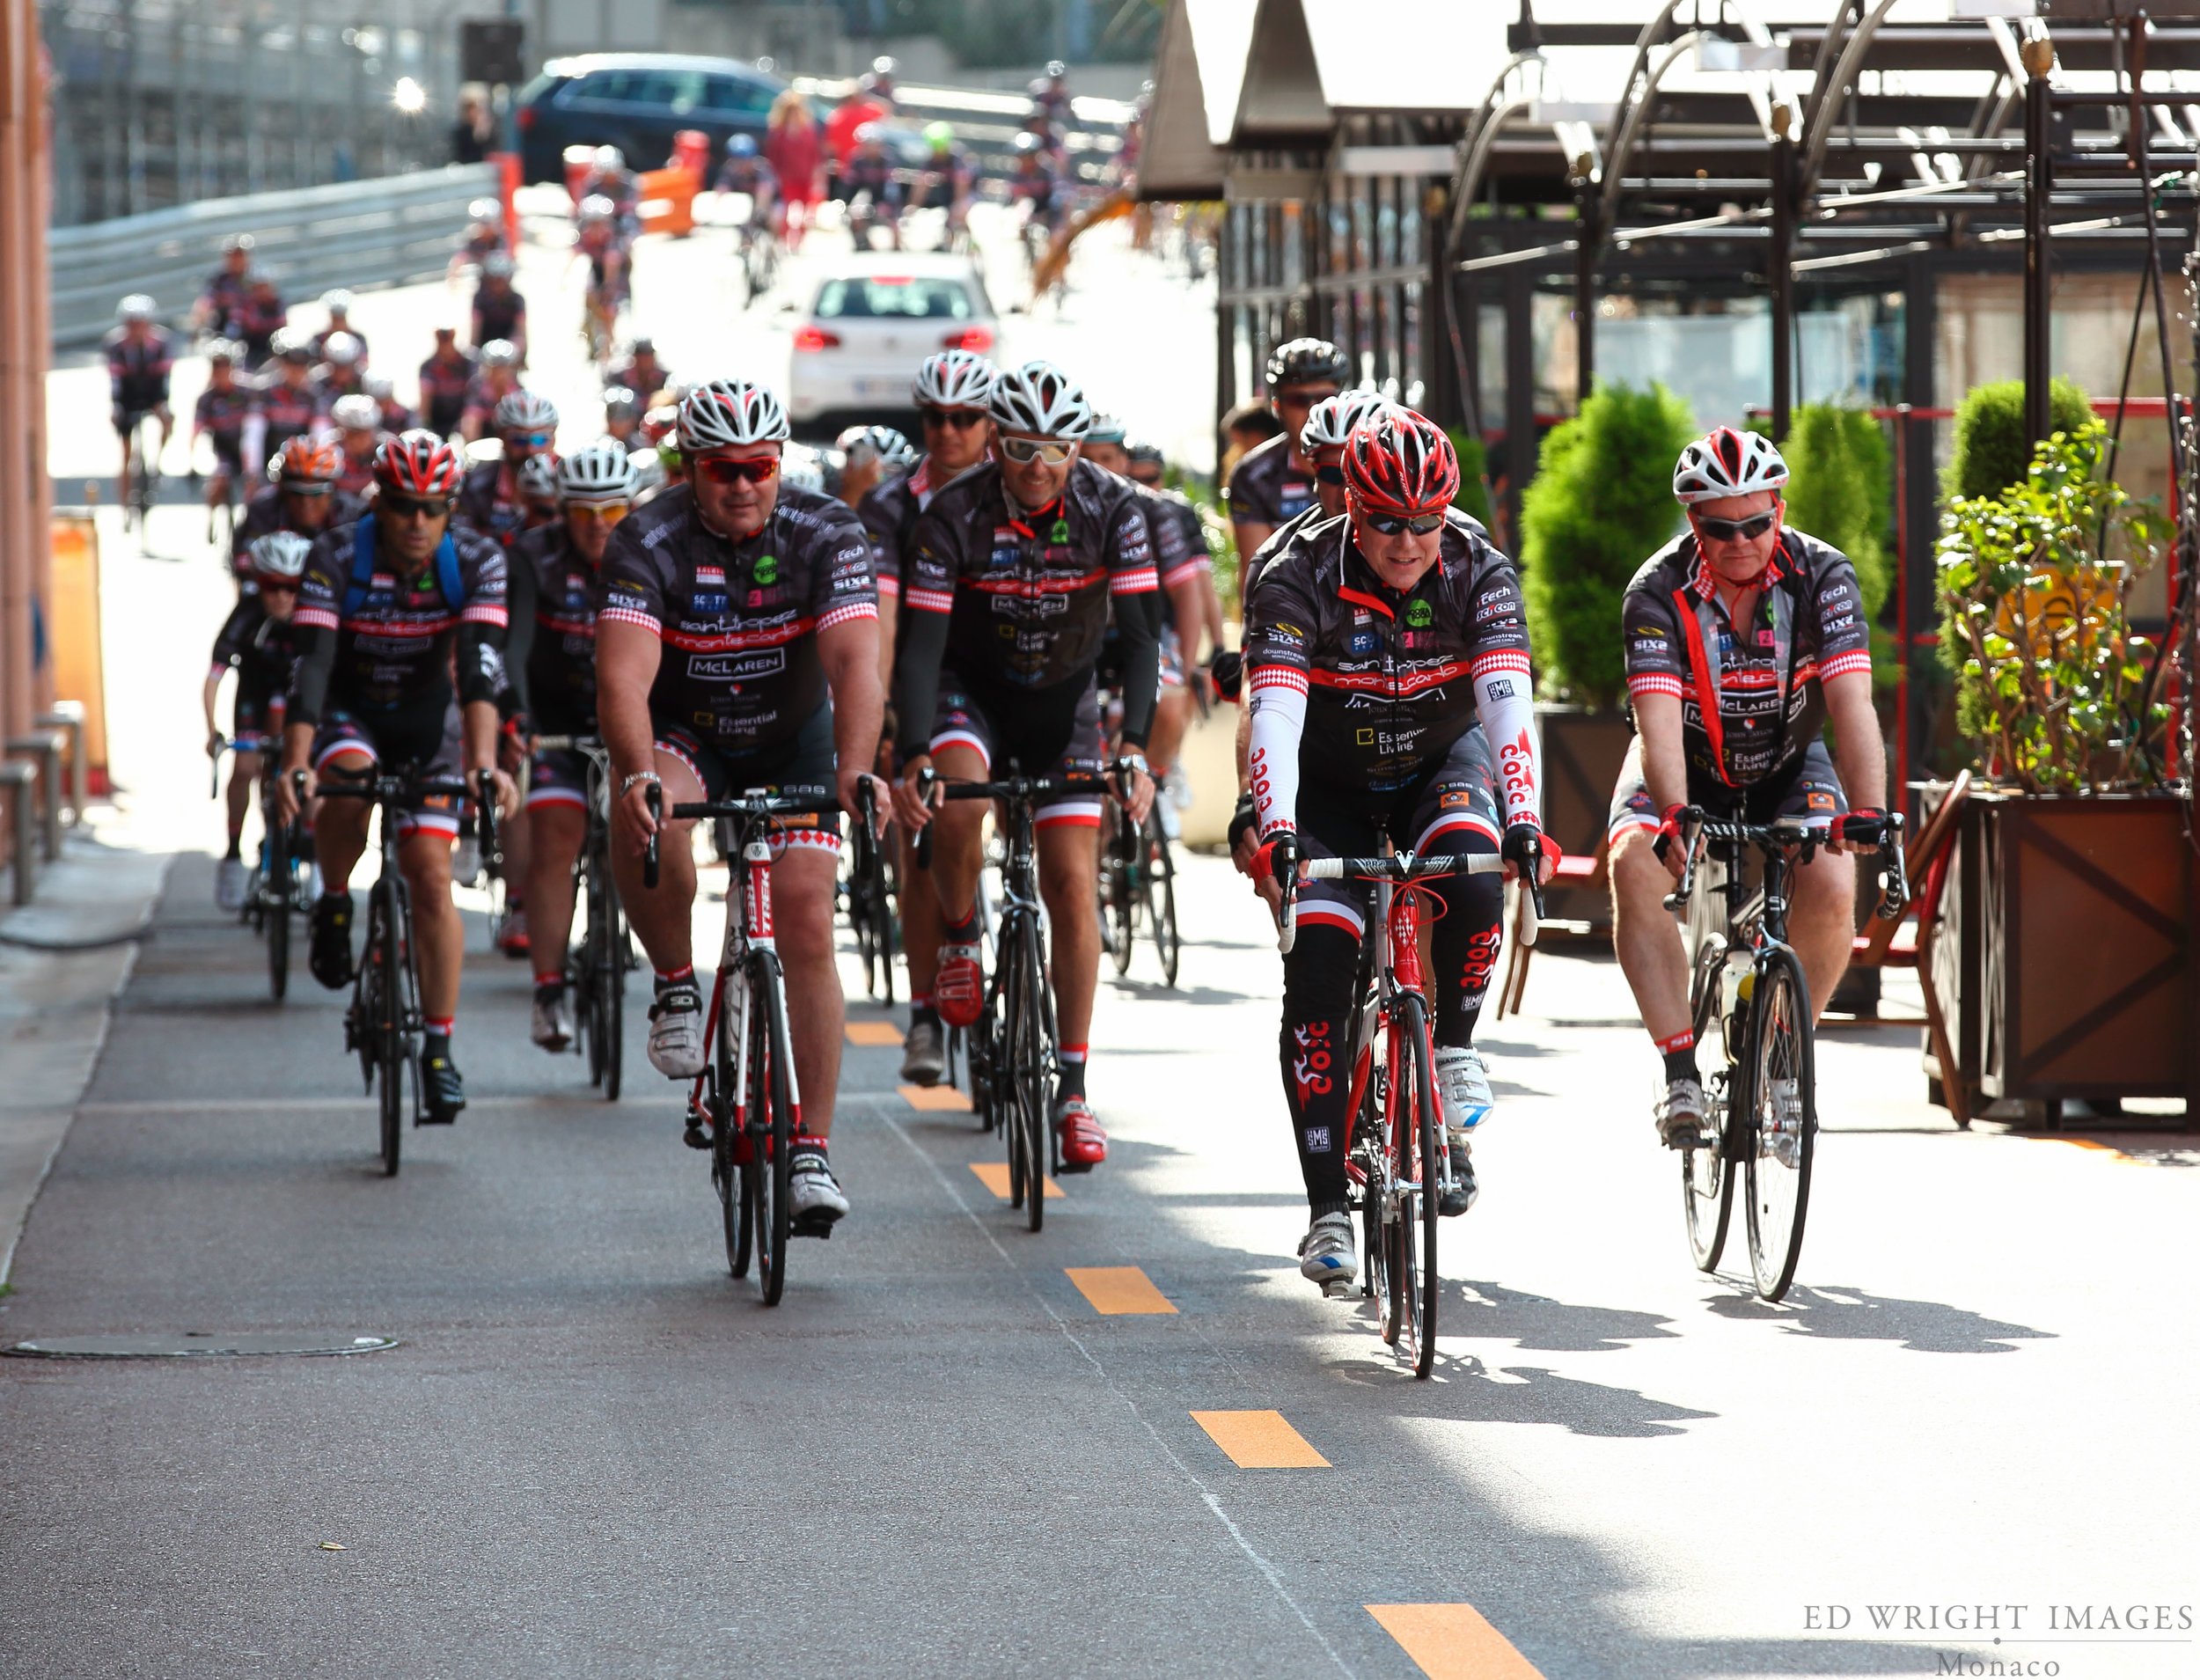 The Champagne & Oyster Cycling Club of Monaco   Great cause    Find out more